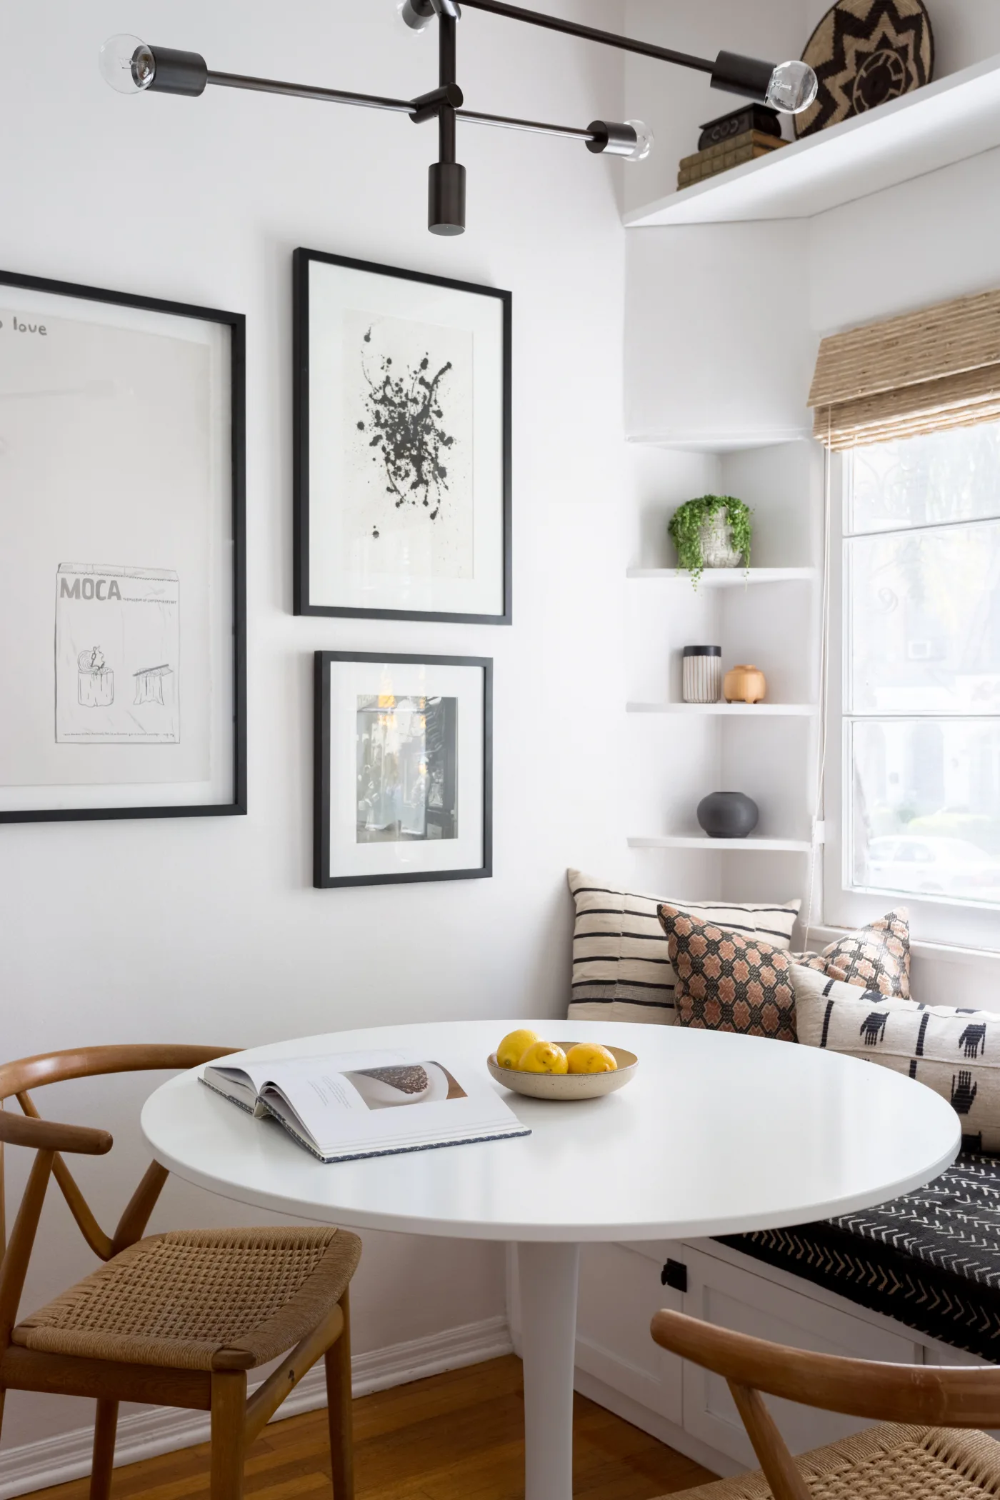 6 Tips for Creating a Cozy Breakfast Nook